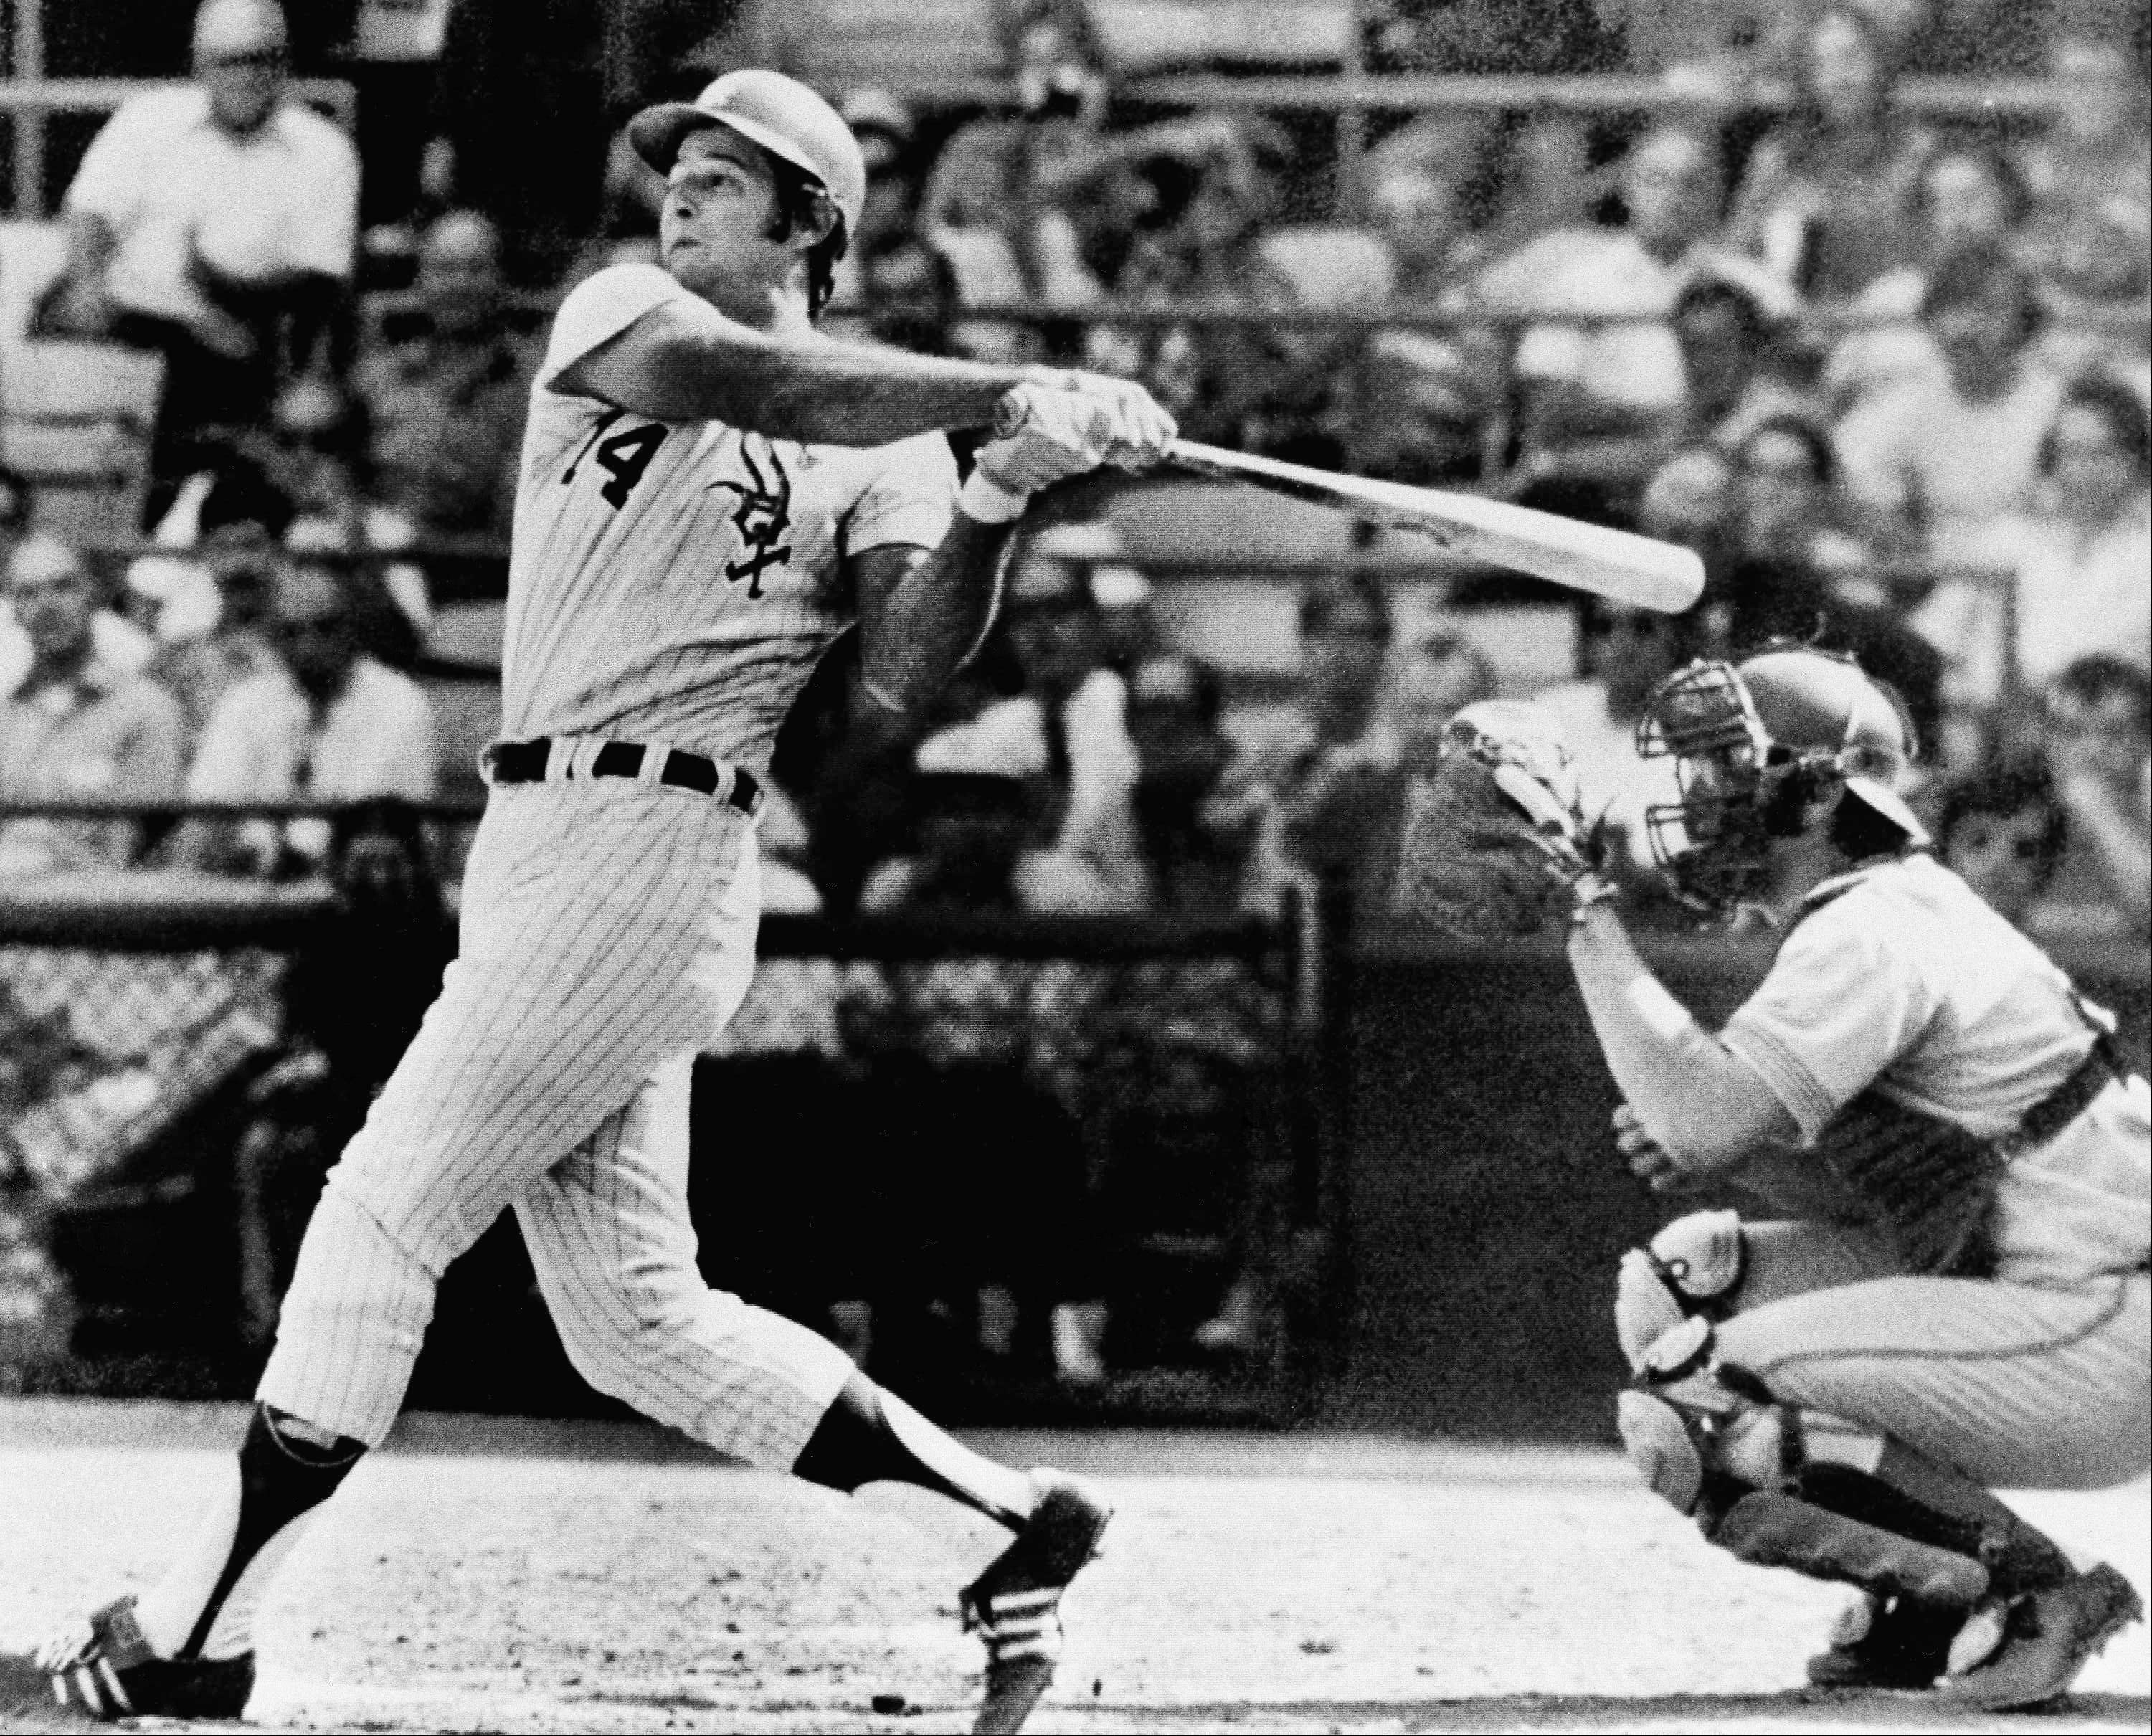 Mike North's #11: Bill Melton